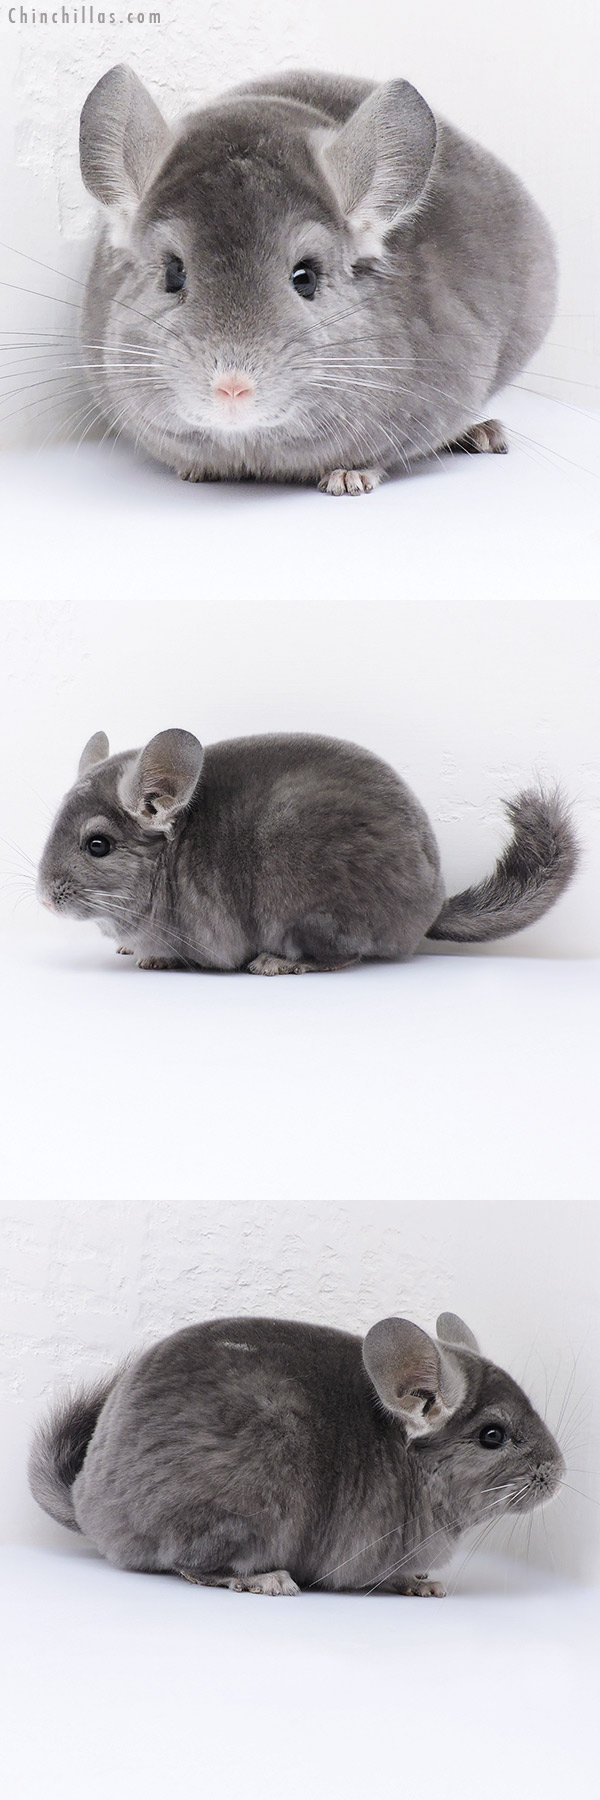 16351 Top Show Quality Wrap Around Violet Male Chinchilla